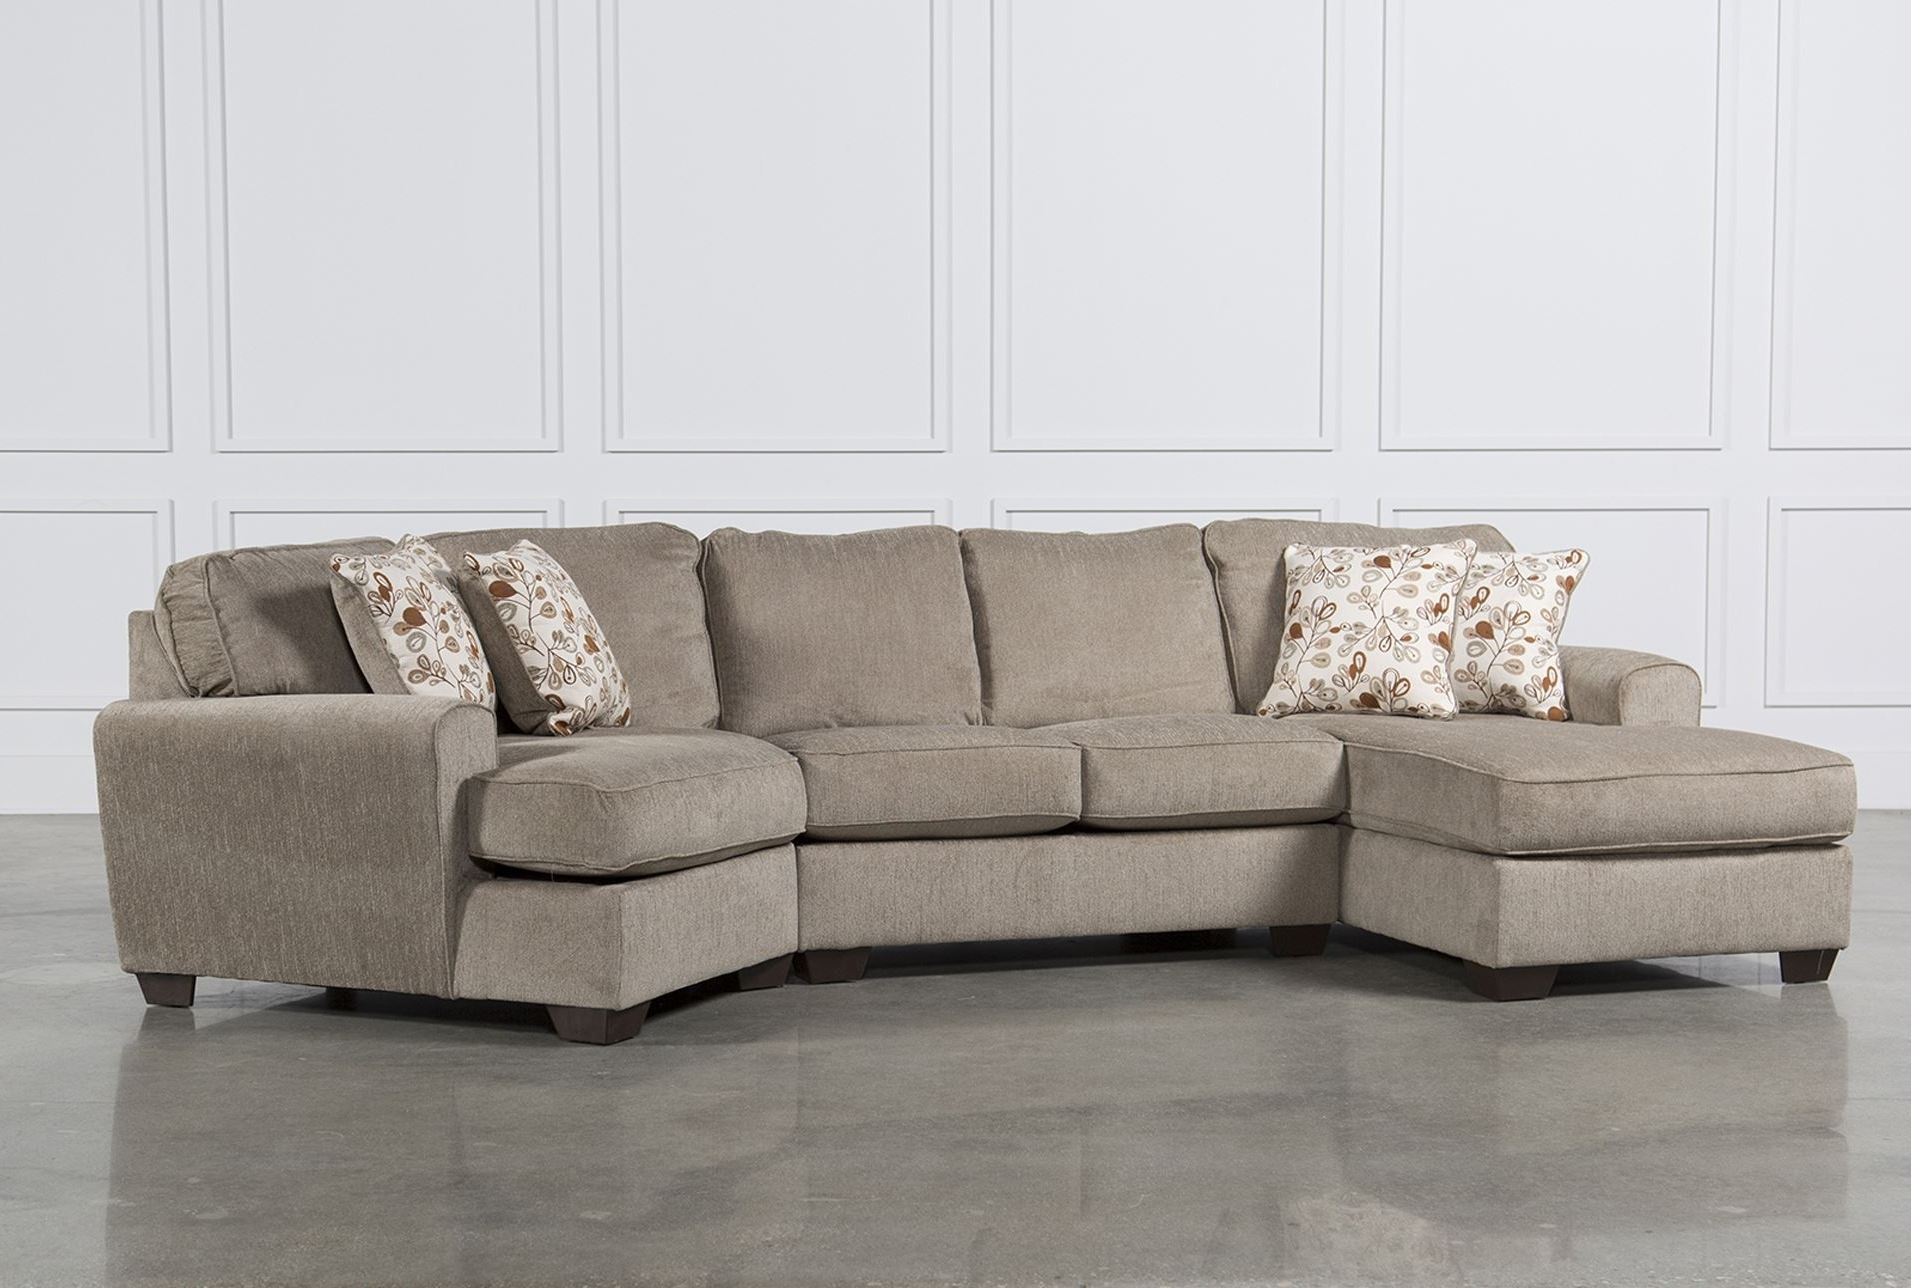 Newest Patola Park 4 Piece Sectional W Raf Cuddler Living Spaces In Sofa With Regard To Sectionals With Cuddler And Chaise (View 2 of 15)